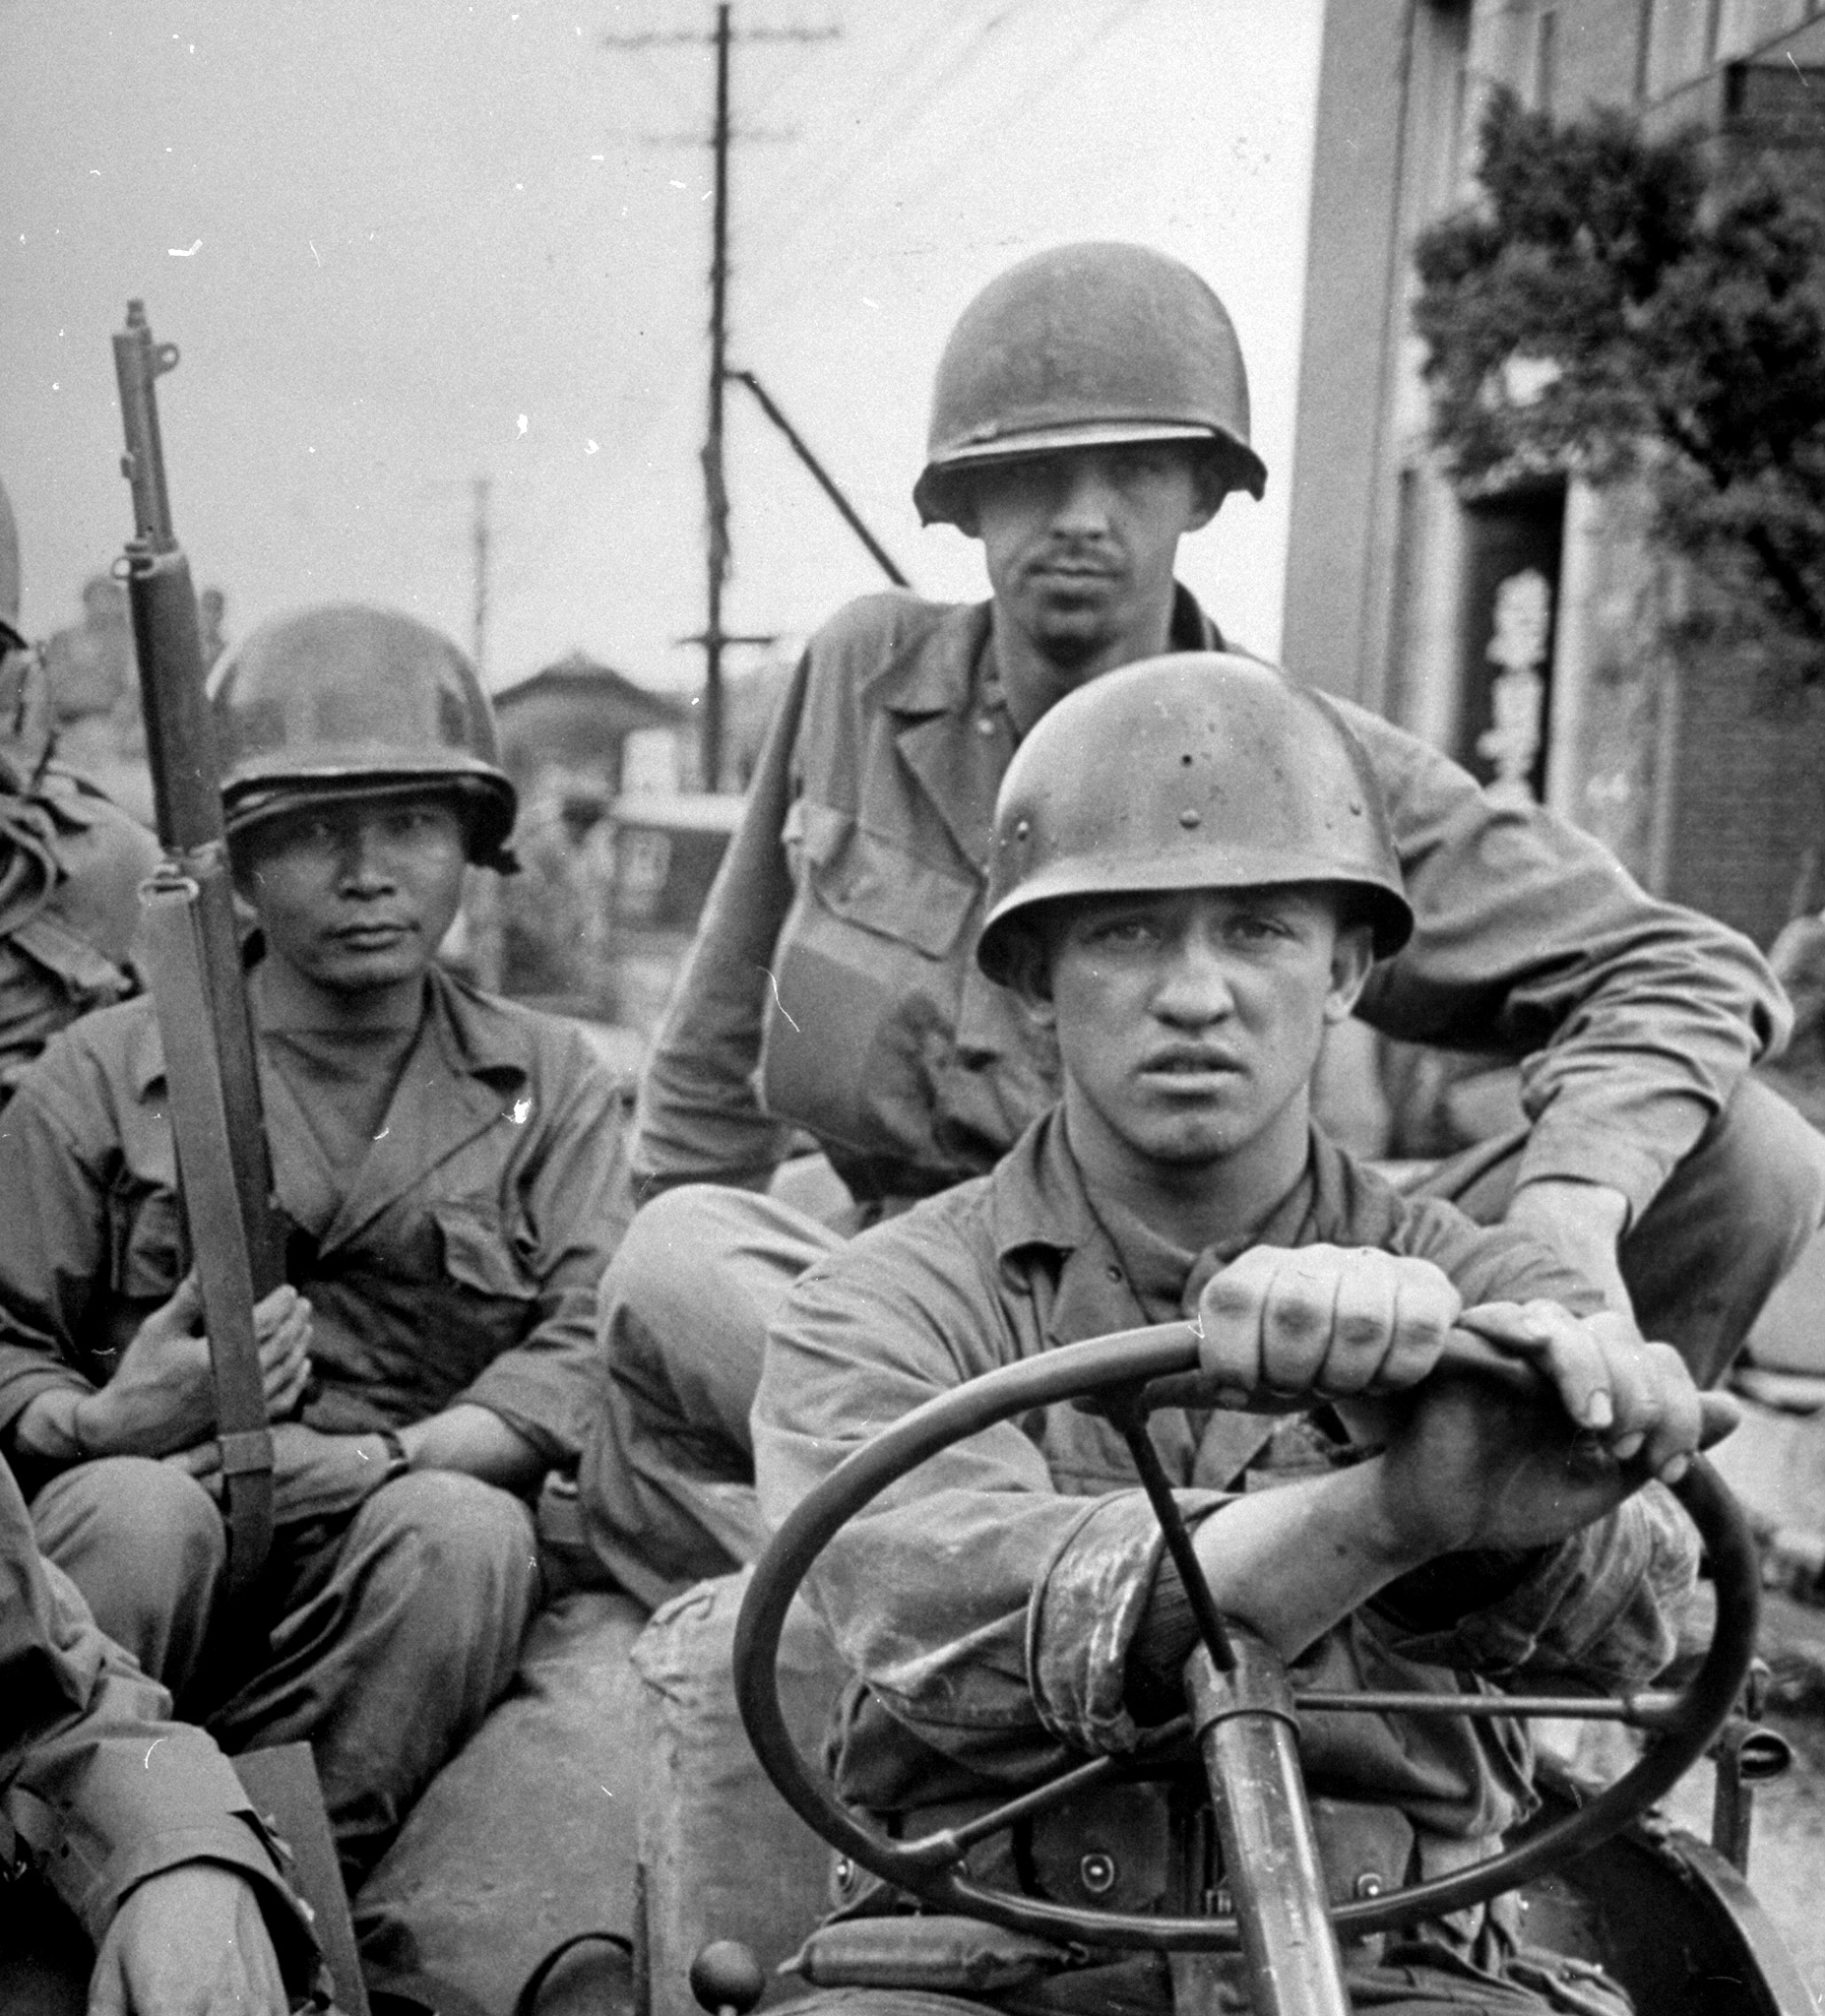 """<b>Caption from LIFE.</b> First U.S. infantry outfit to shed blood in the Korean war was the 24th """"Victory"""" Division, three of whose men are shown aboard a jeep in Korea. (This image was the cover of LIFE on July 31, 1950.)"""